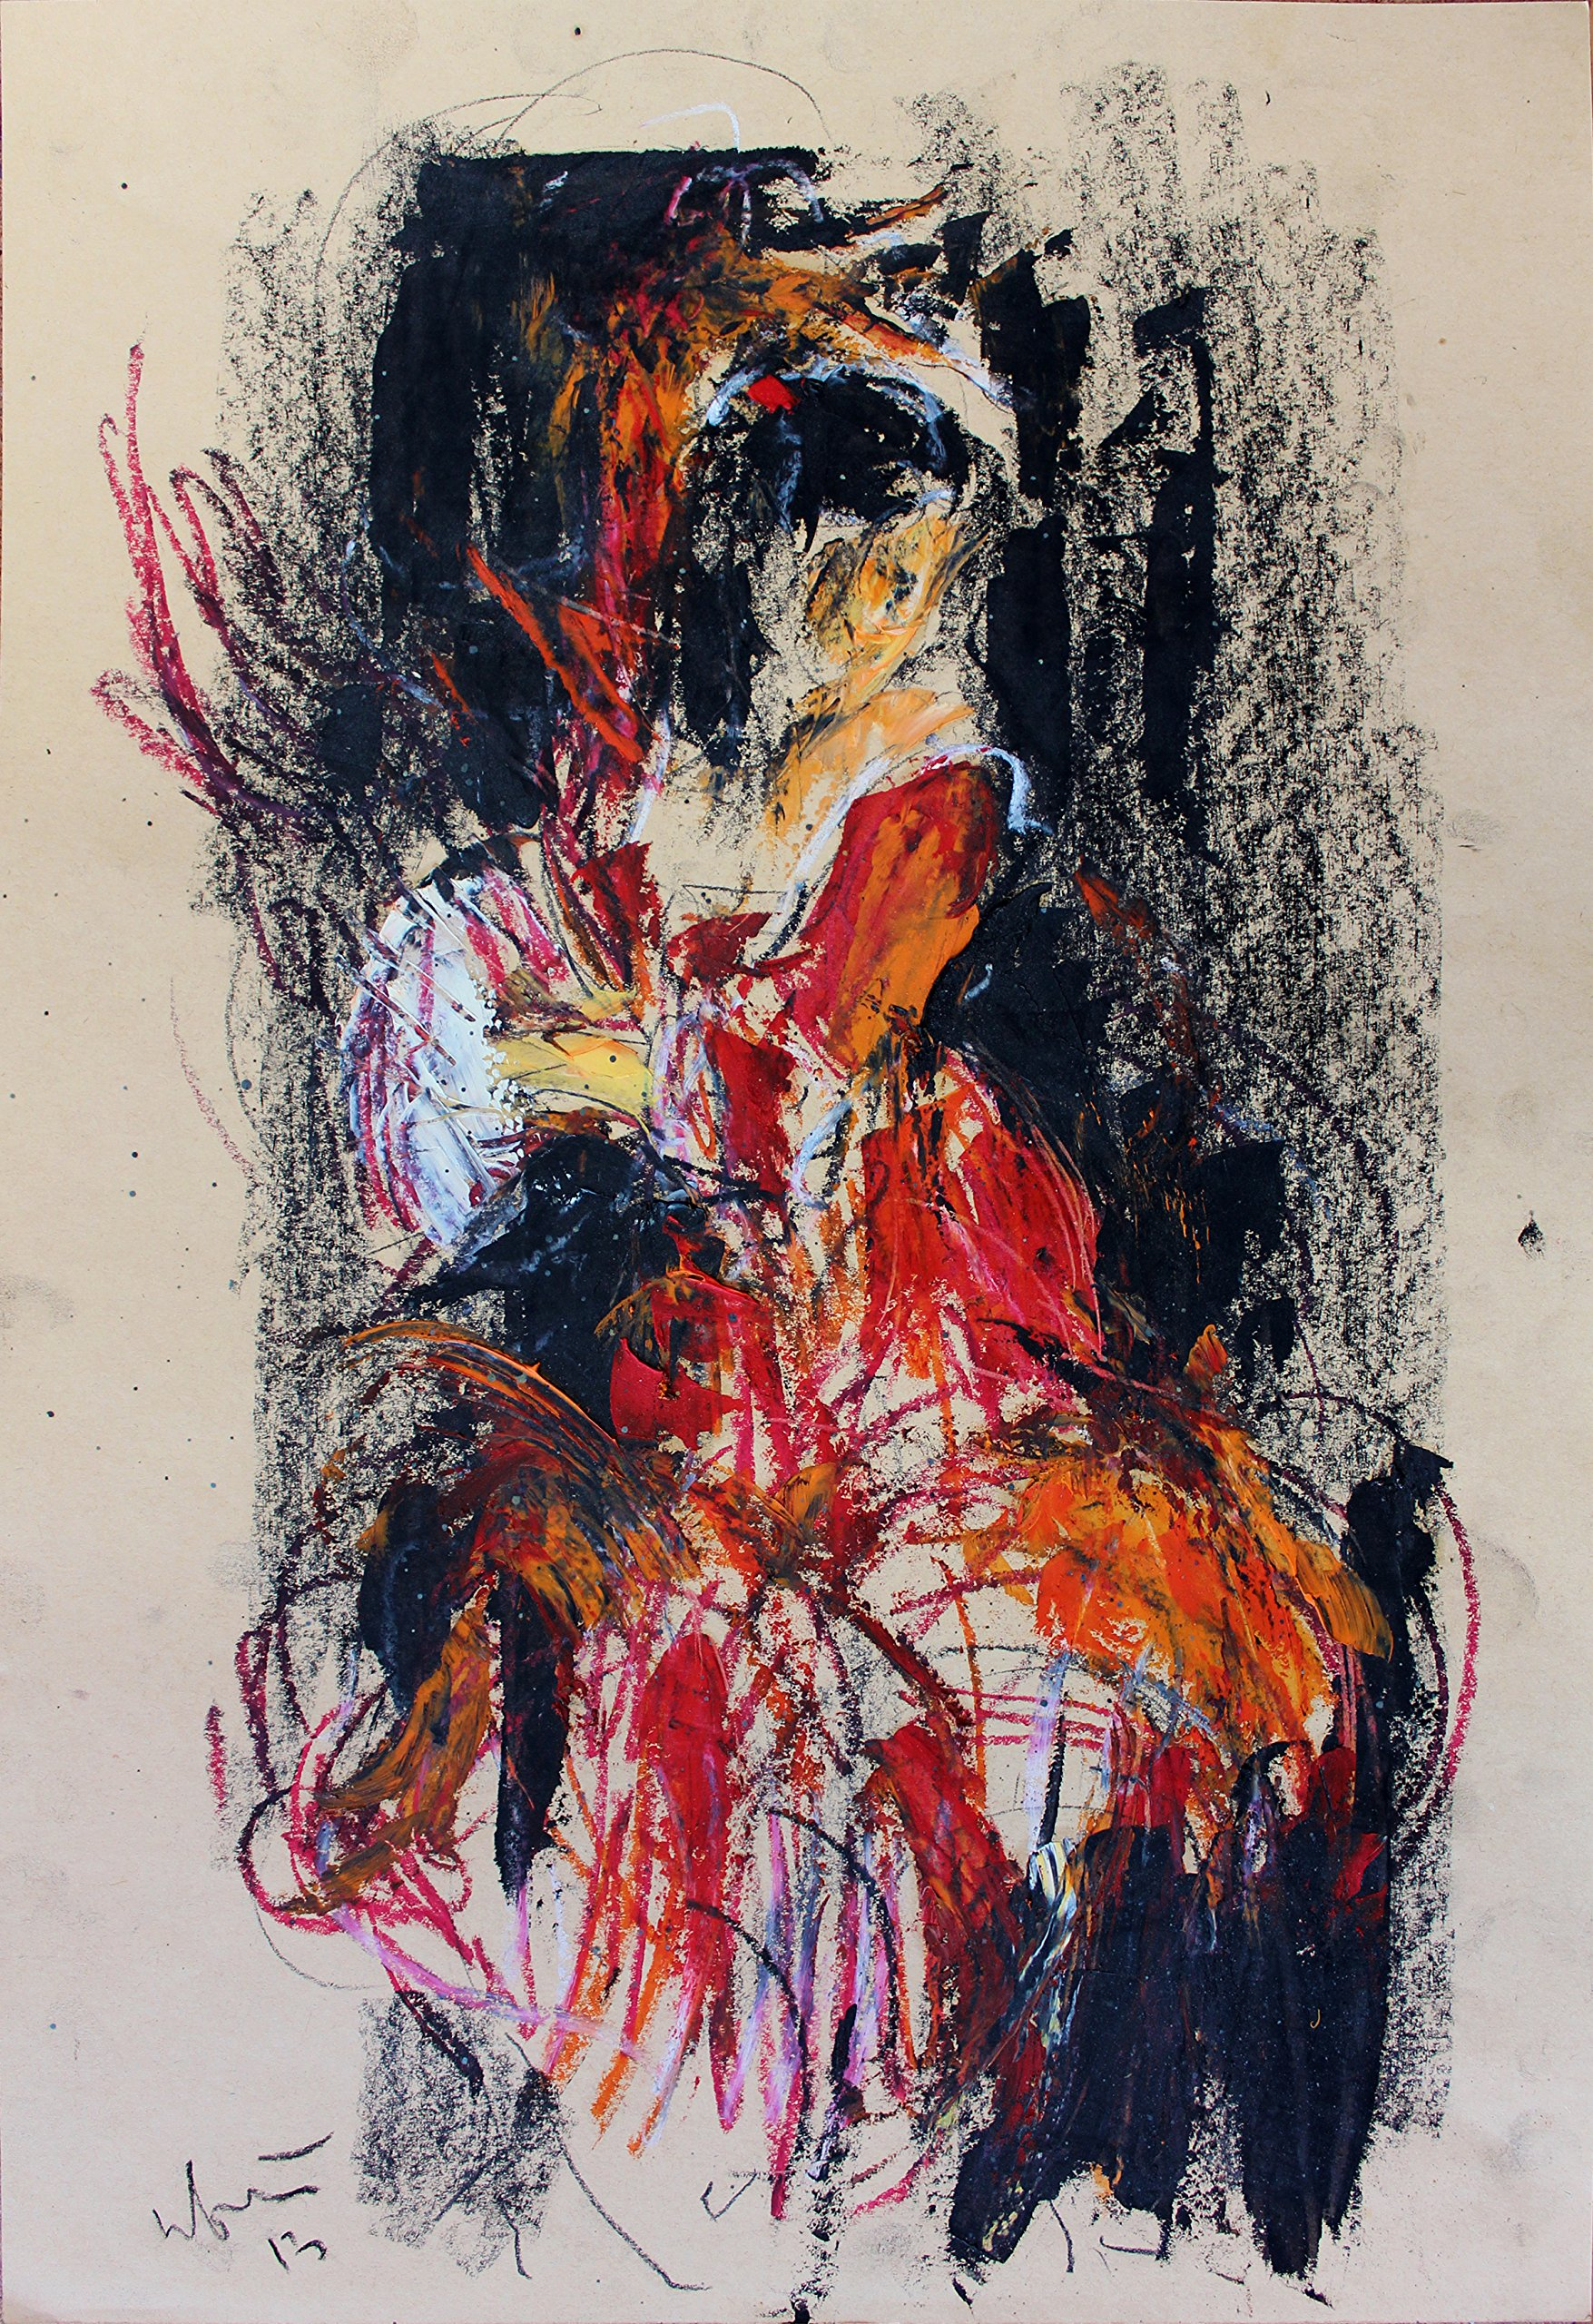 Abstract Original drawing Flamenco drancer Modern wall art Charcoal Oil Pastel Artistic Woman Figurative art by IvMarART